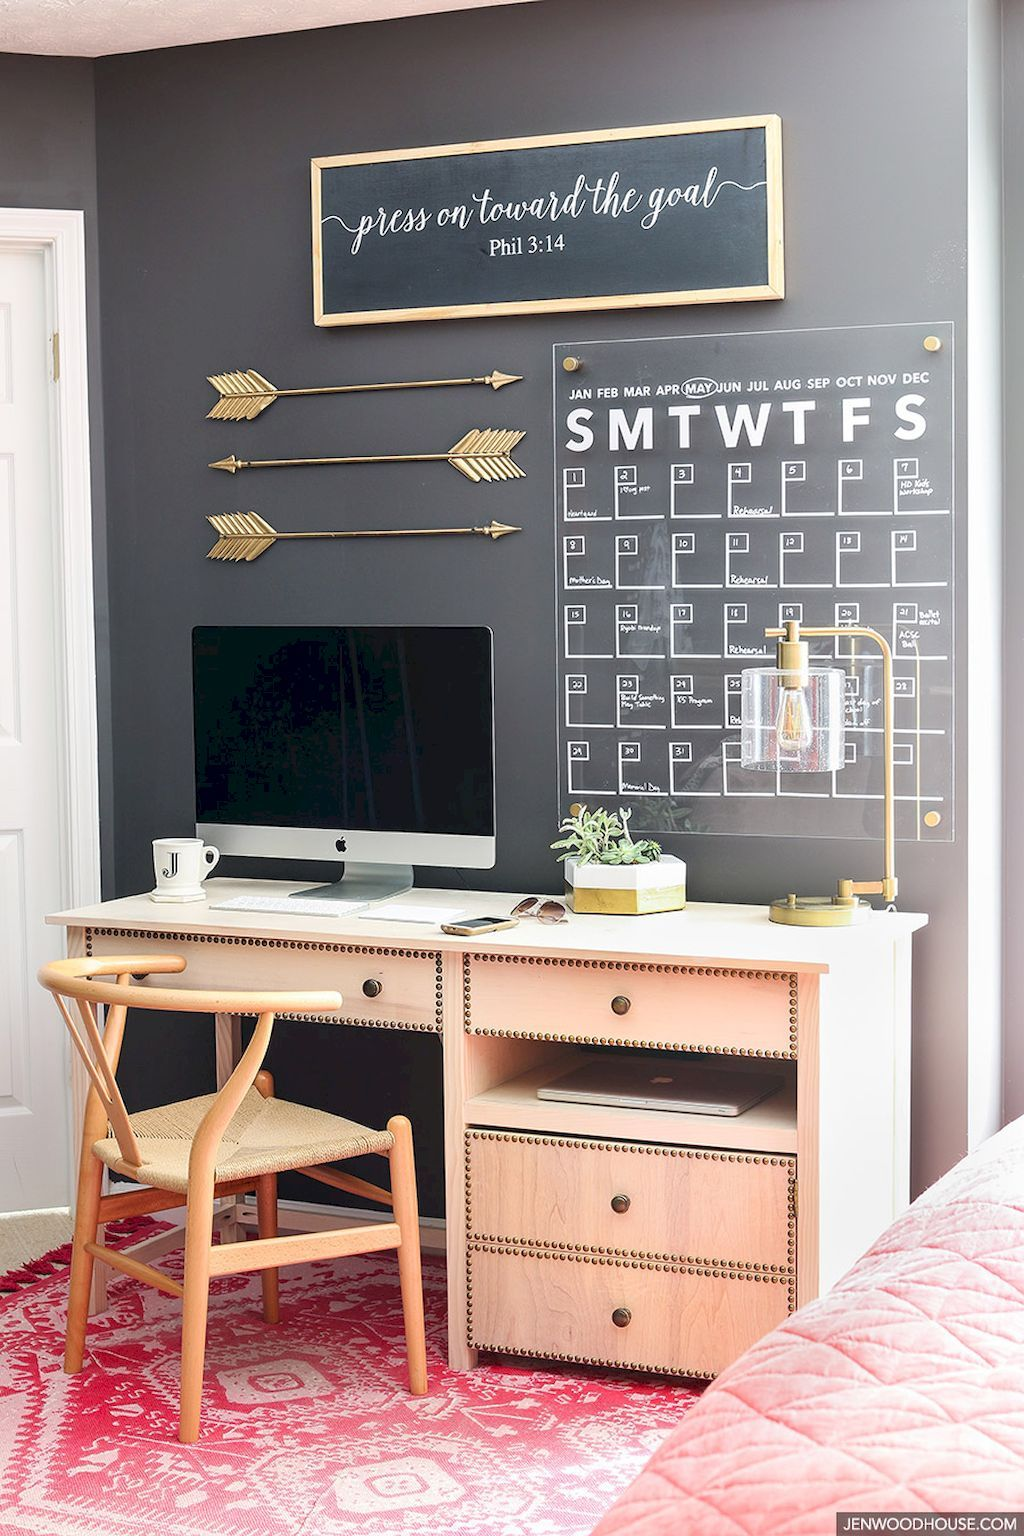 Awesome first apartment decorating ideas on a budget